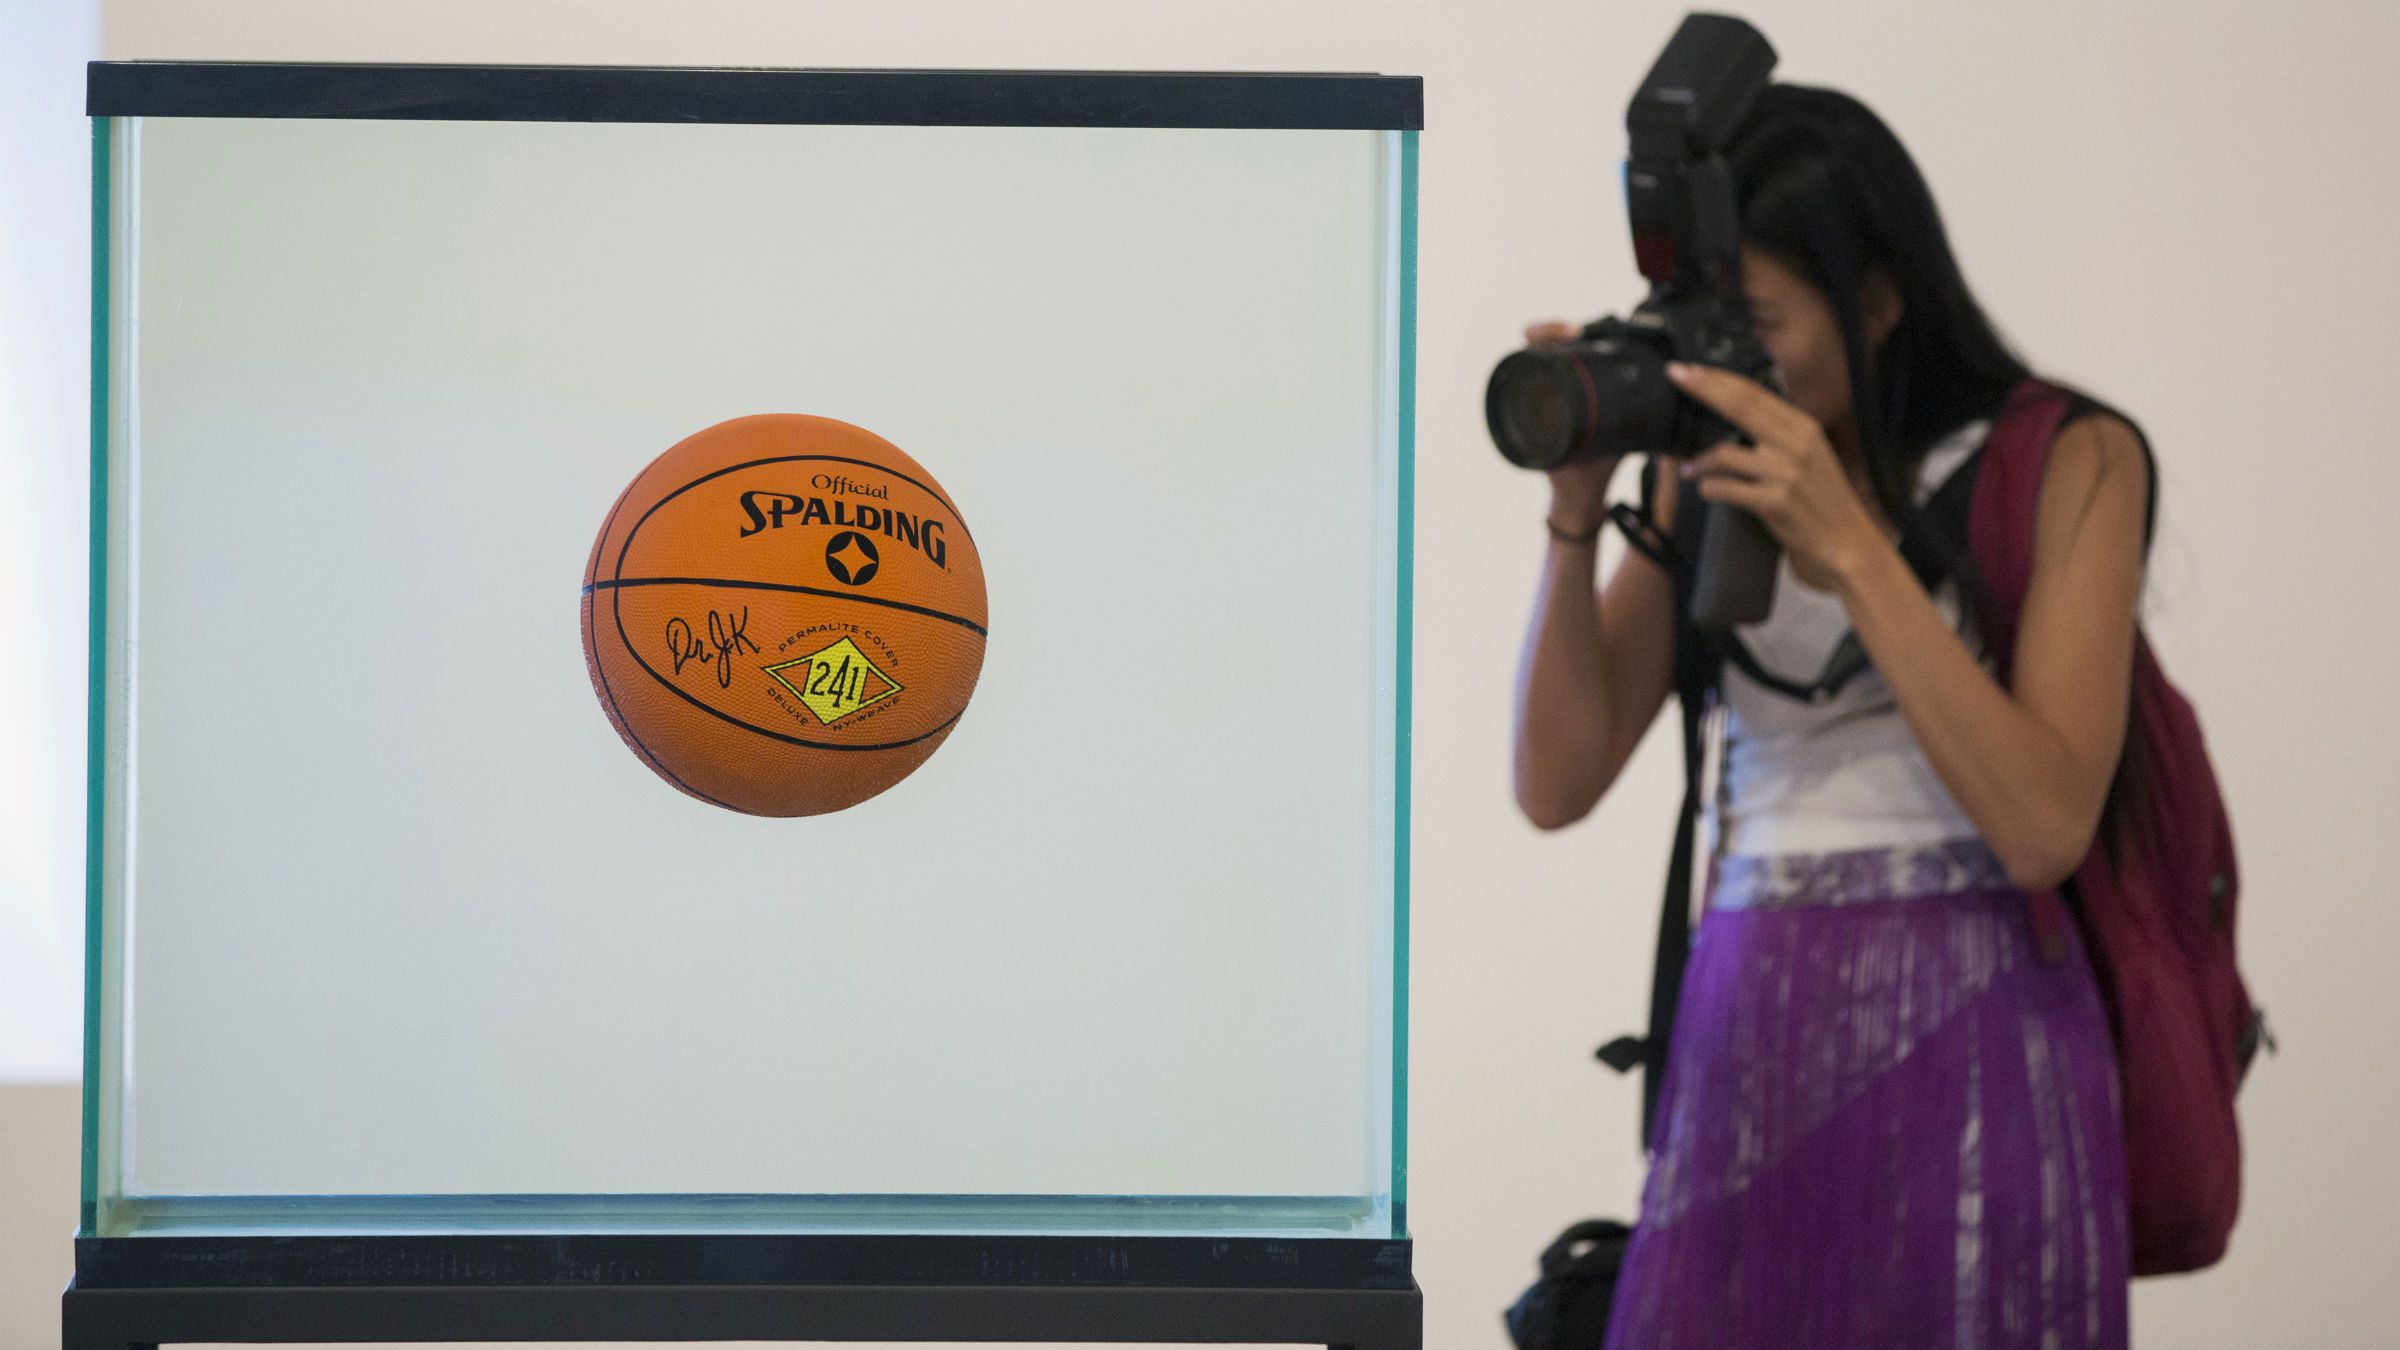 A woman photographs the sculpture One Ball Total Equilibrium Tank during a media preview before the opening of a Jeff Koons retrospective at the Whitney Museum of American Art in New York June 24, 2014. REUTERS/Lucas Jackson (UNITED STATES - Tags: SOCIETY ENTERTAINMENT)